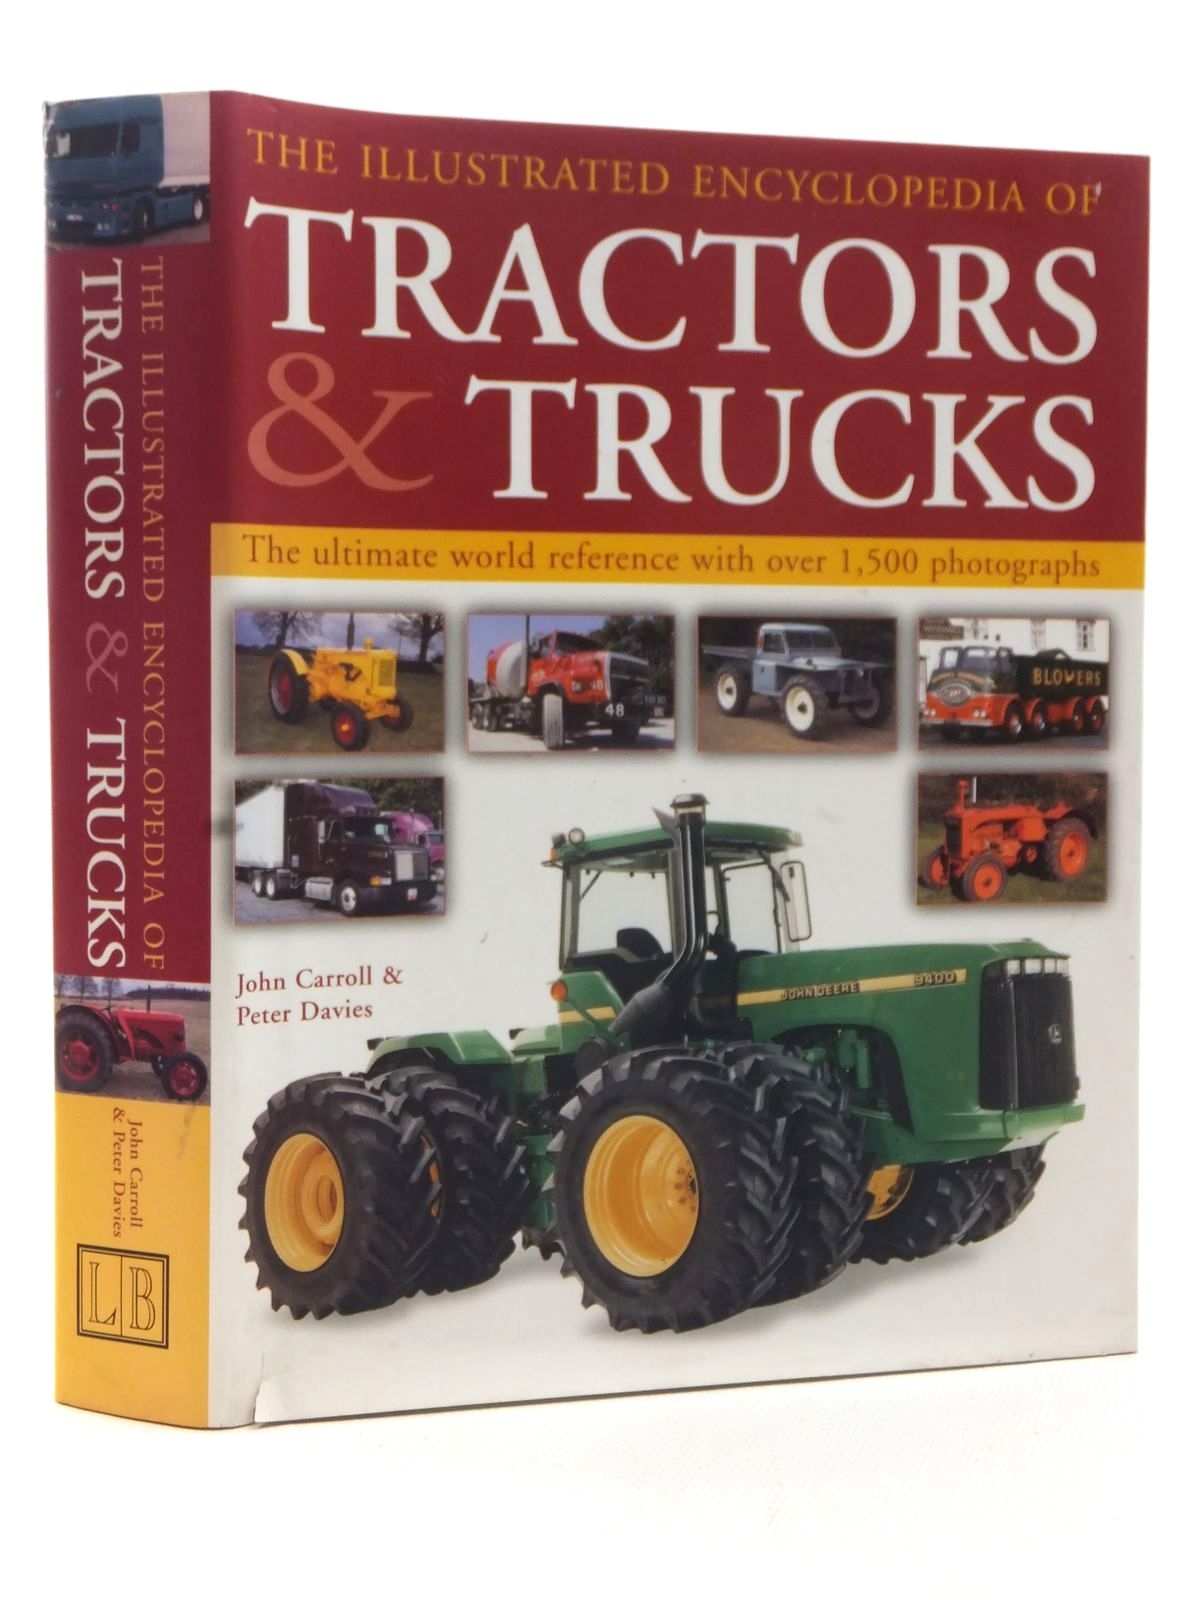 The Ultimate World Reference With Over 1500 Photographs The Illustrated Encyclopedia of Tractors /& Trucks